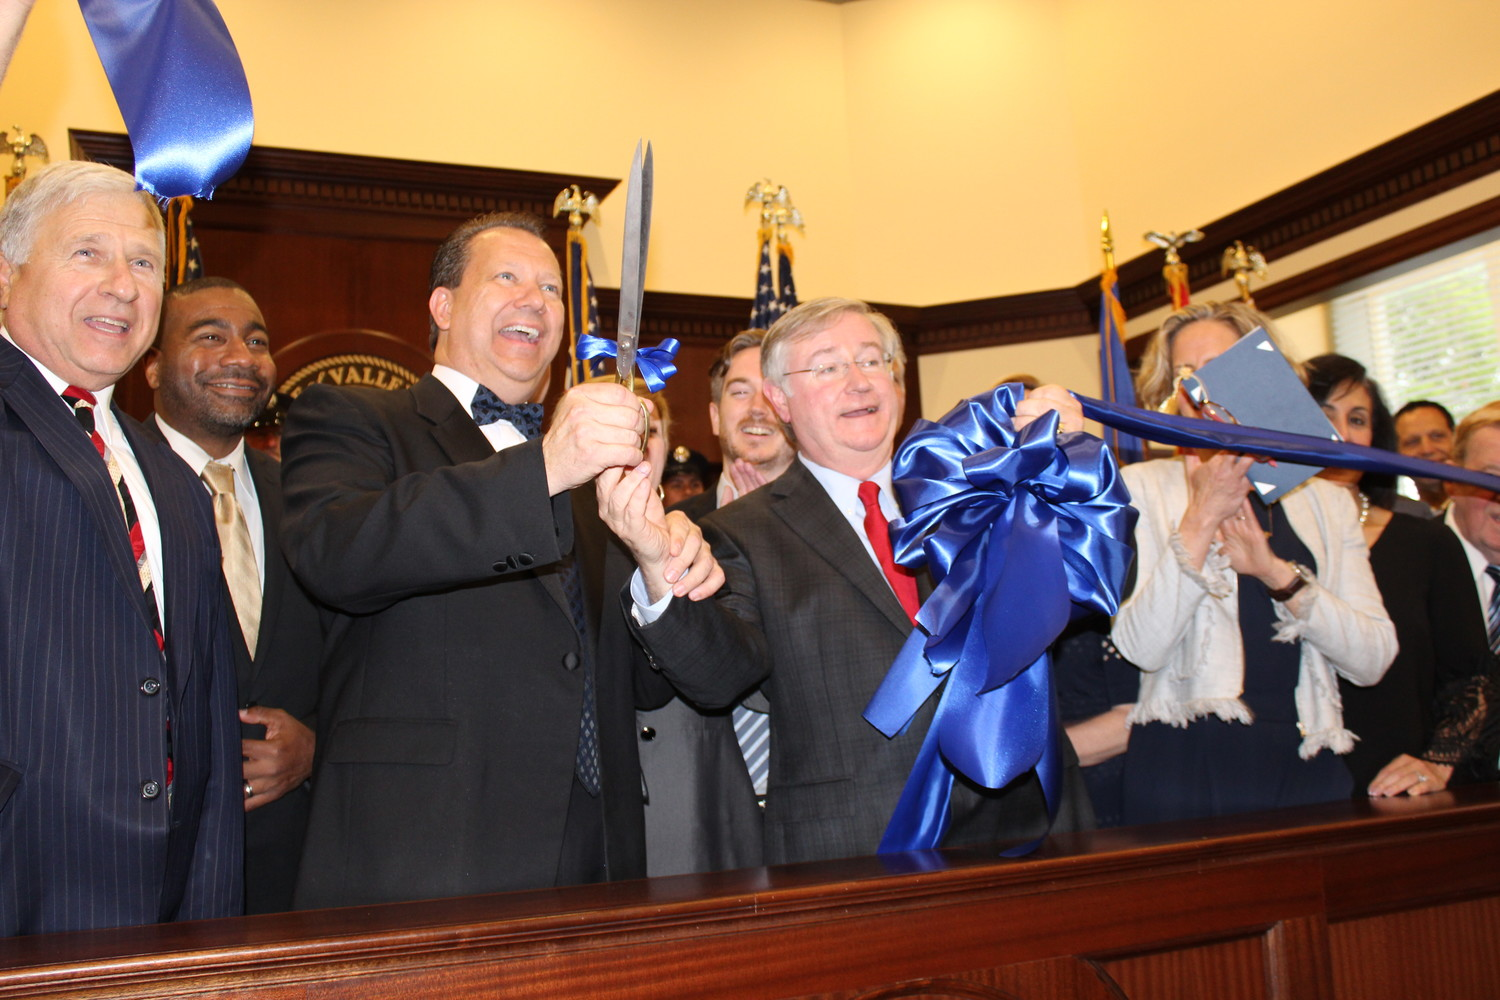 Mayor Ed Fare, center, and Former Valley Stream Village Justice Robert Bogle, right, cut the ribbon for the new courthouse and municipal building on May 16.